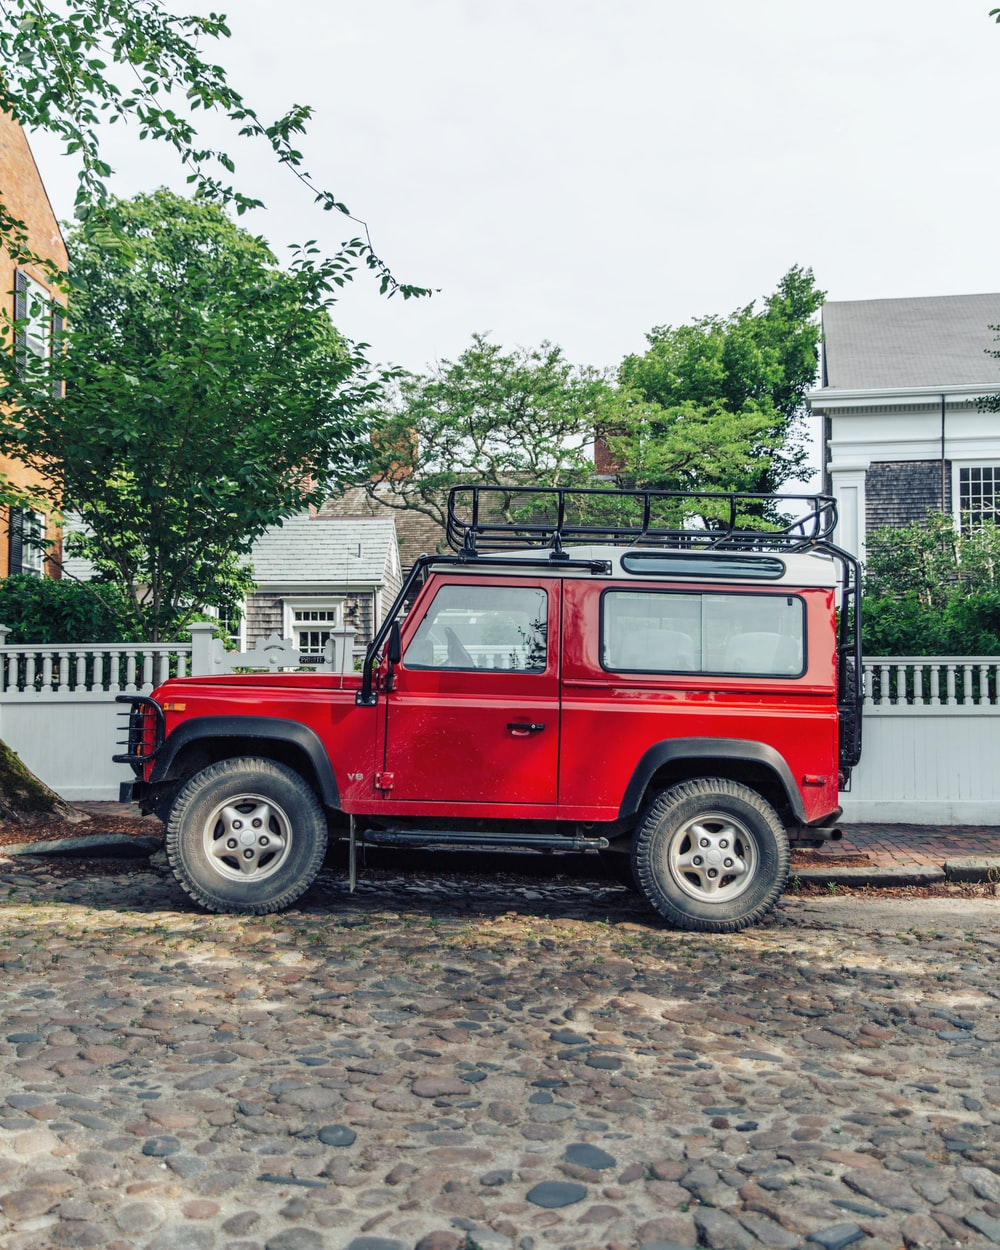 red off-road car parked at sidewalk